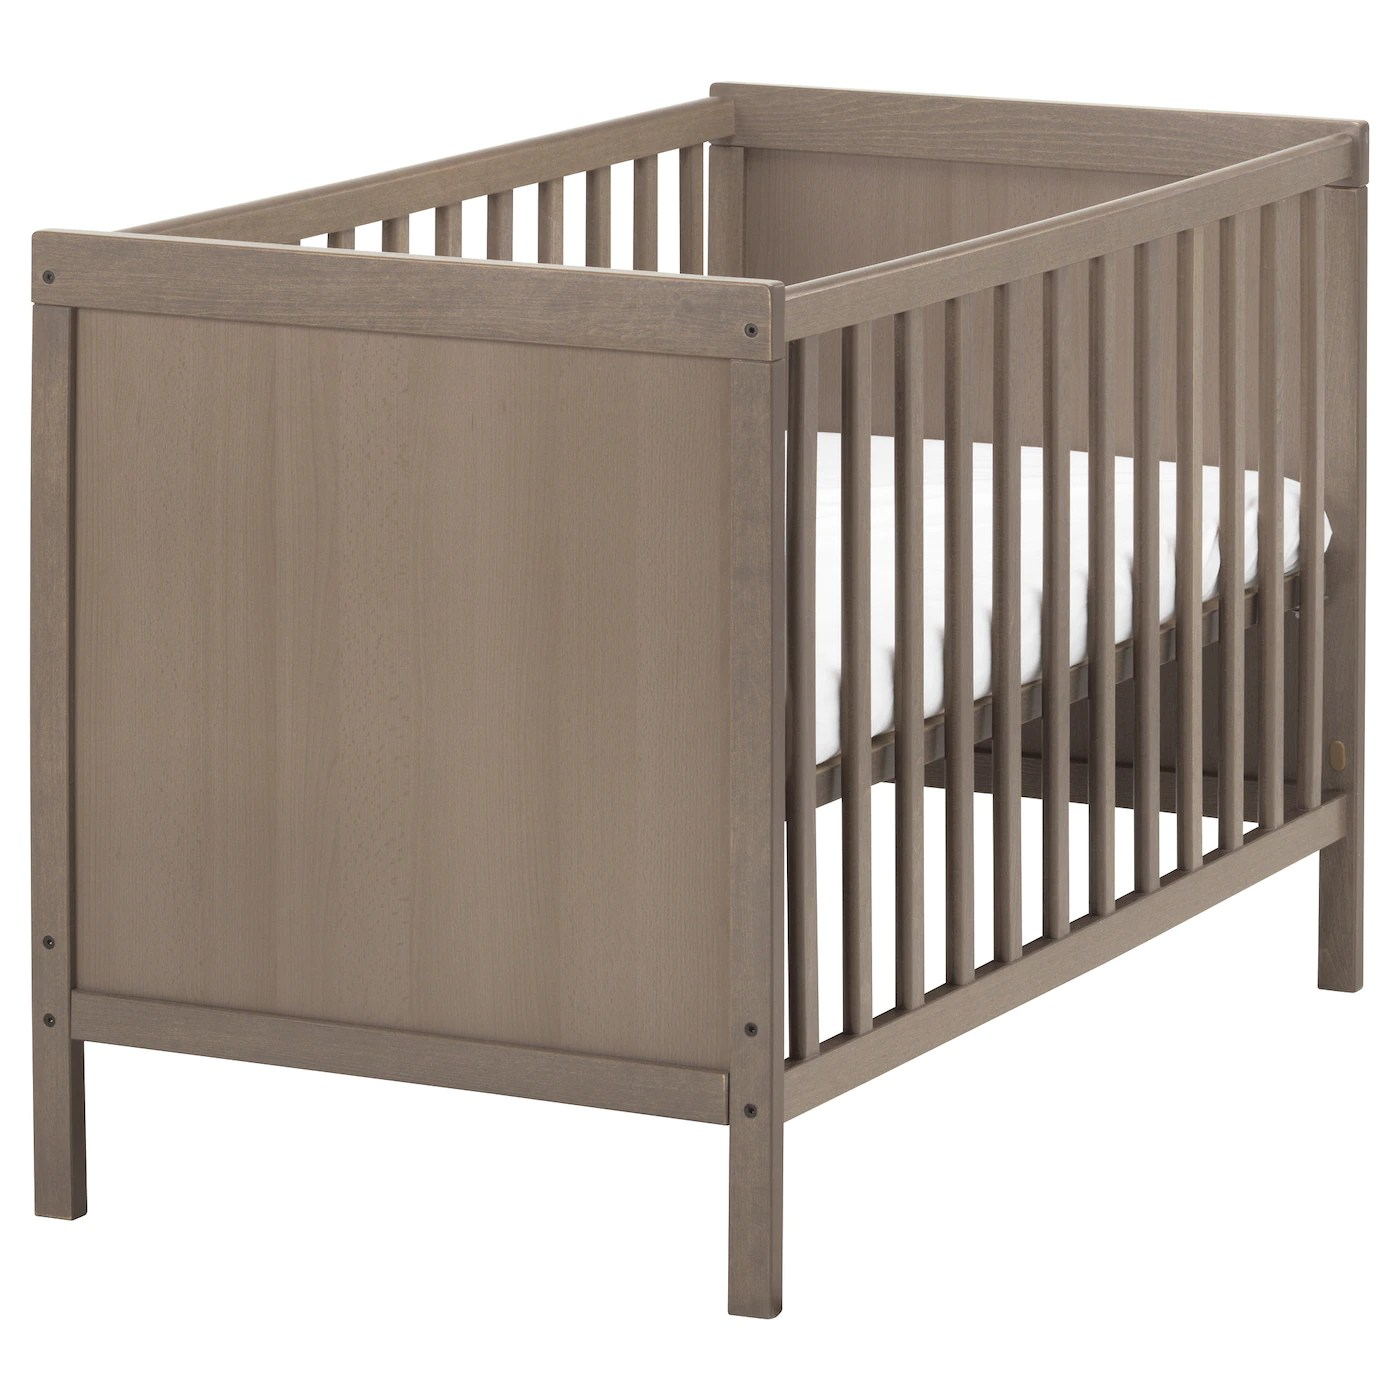 Cot Baby Cots Baby Cot Beds Ikea